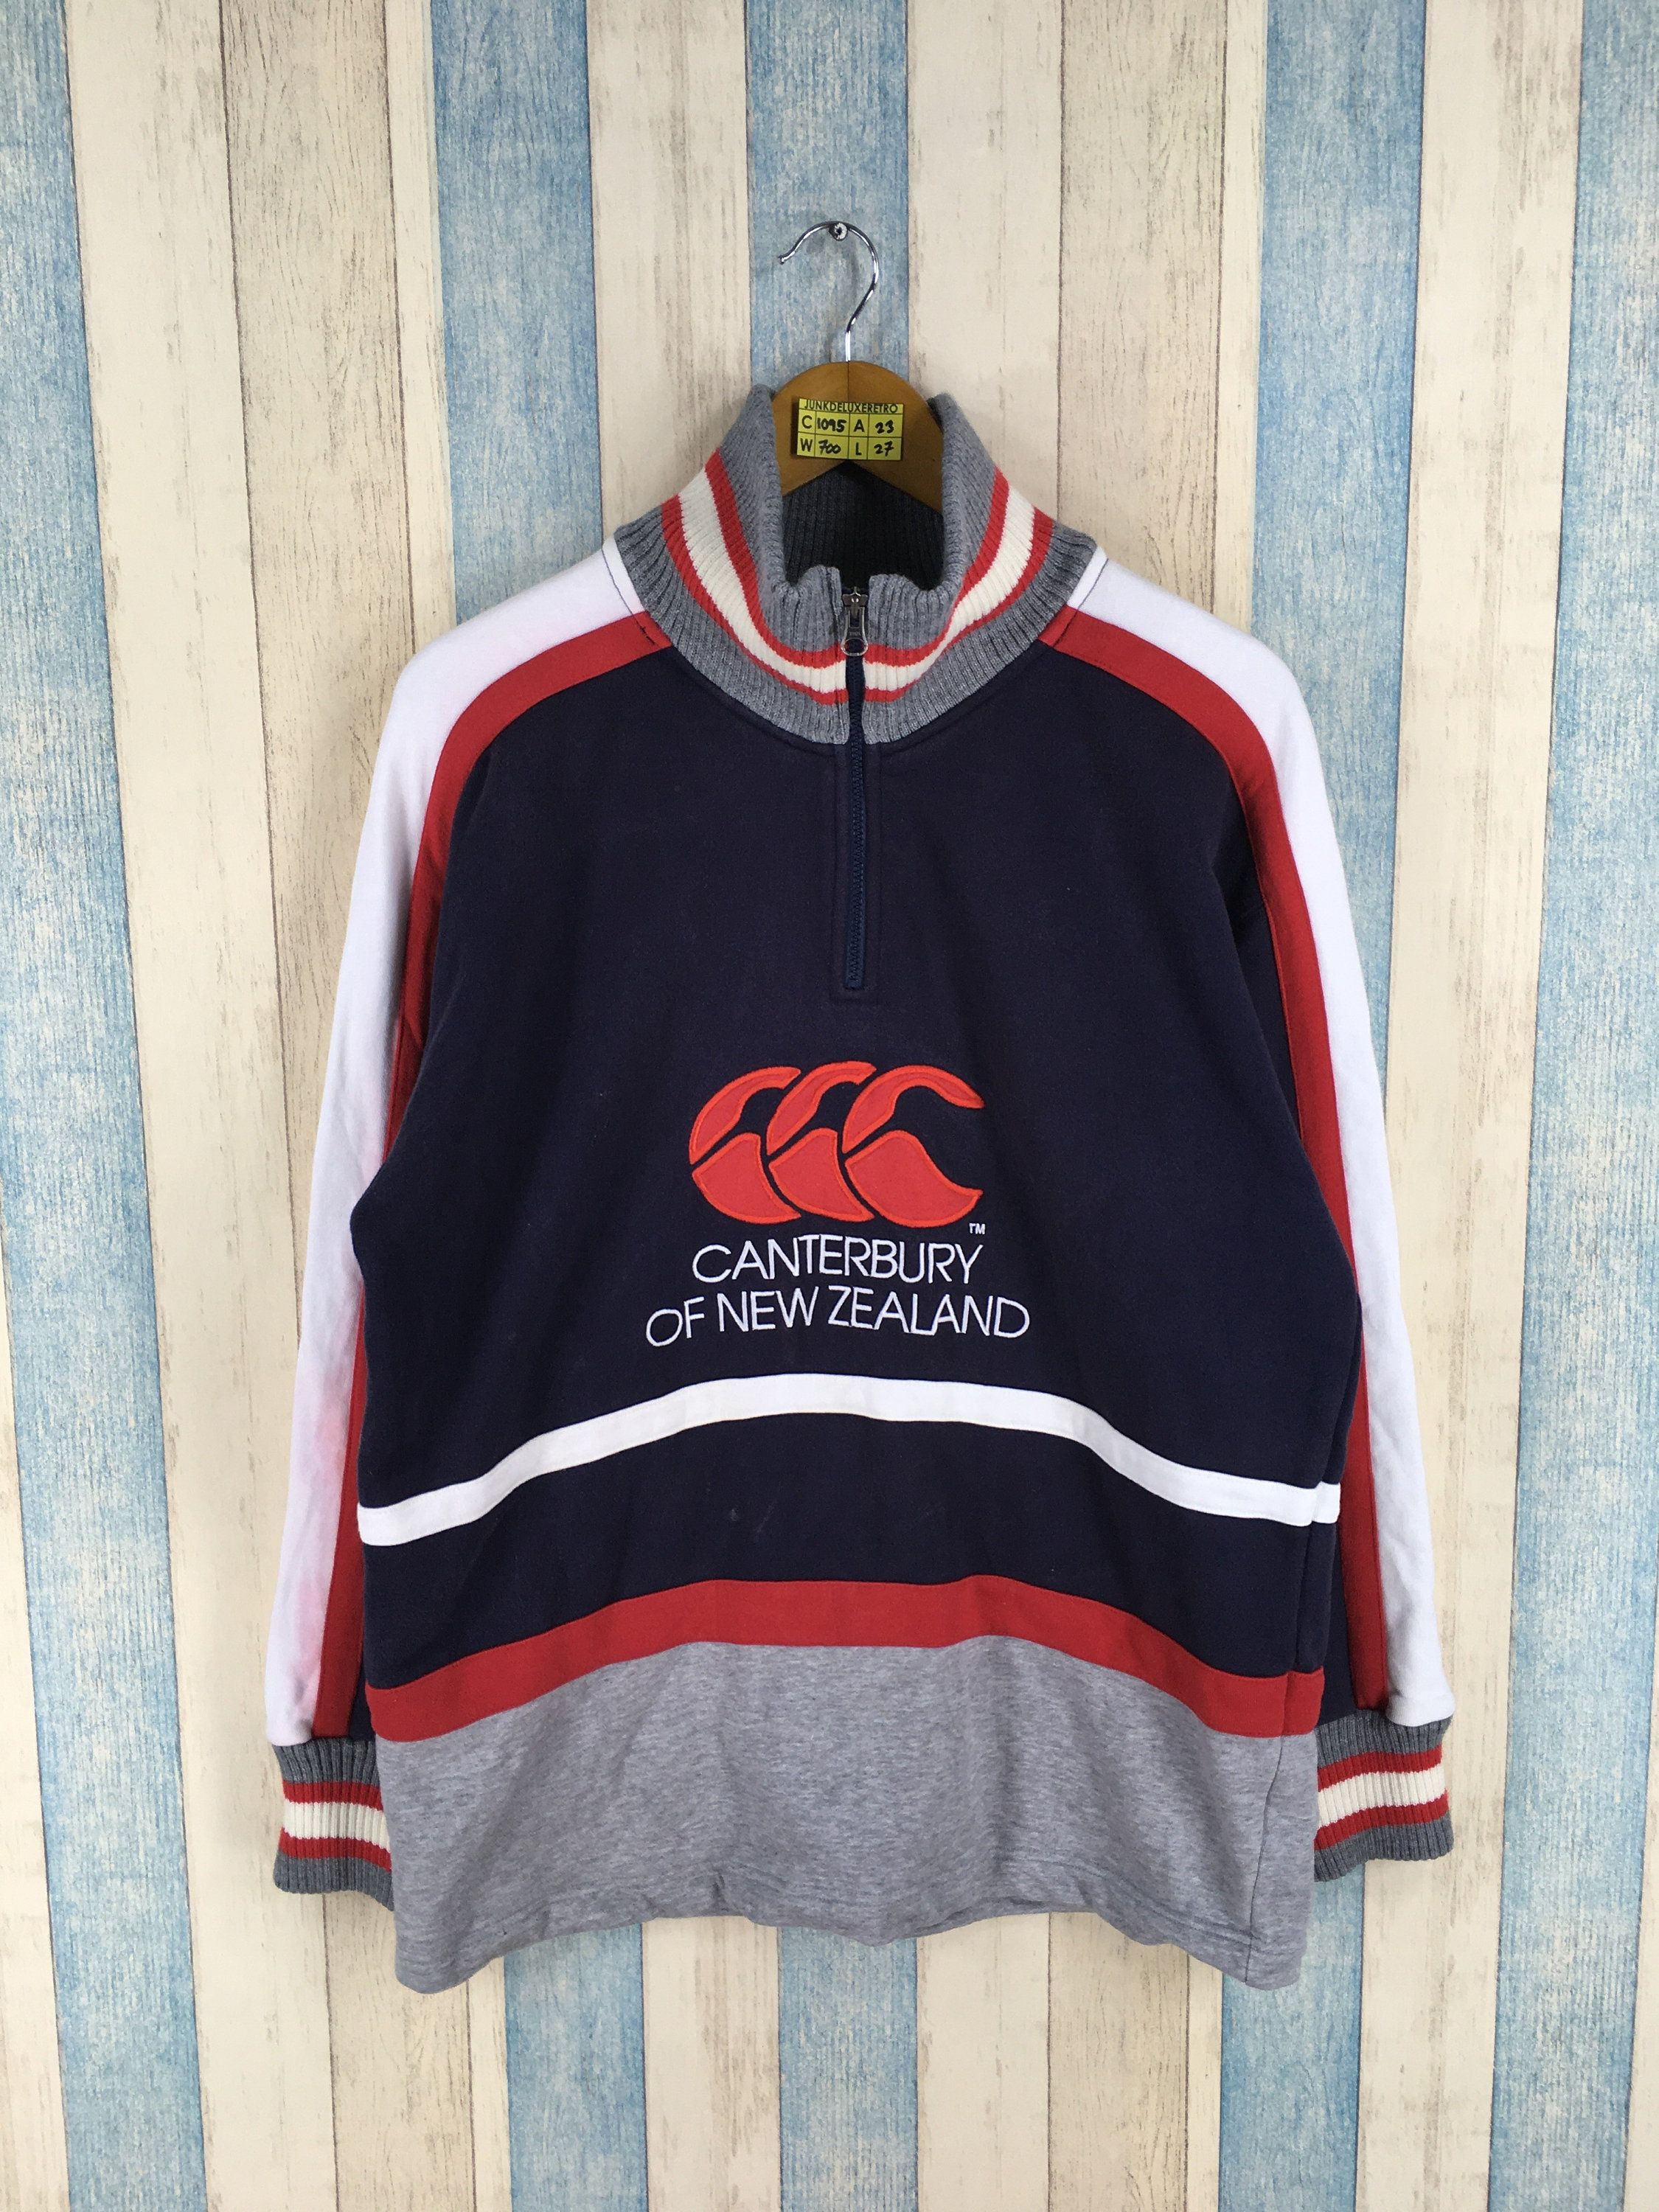 CANTERBURY Rugby Sweater Medium Vintage 90's Canterbury Of New